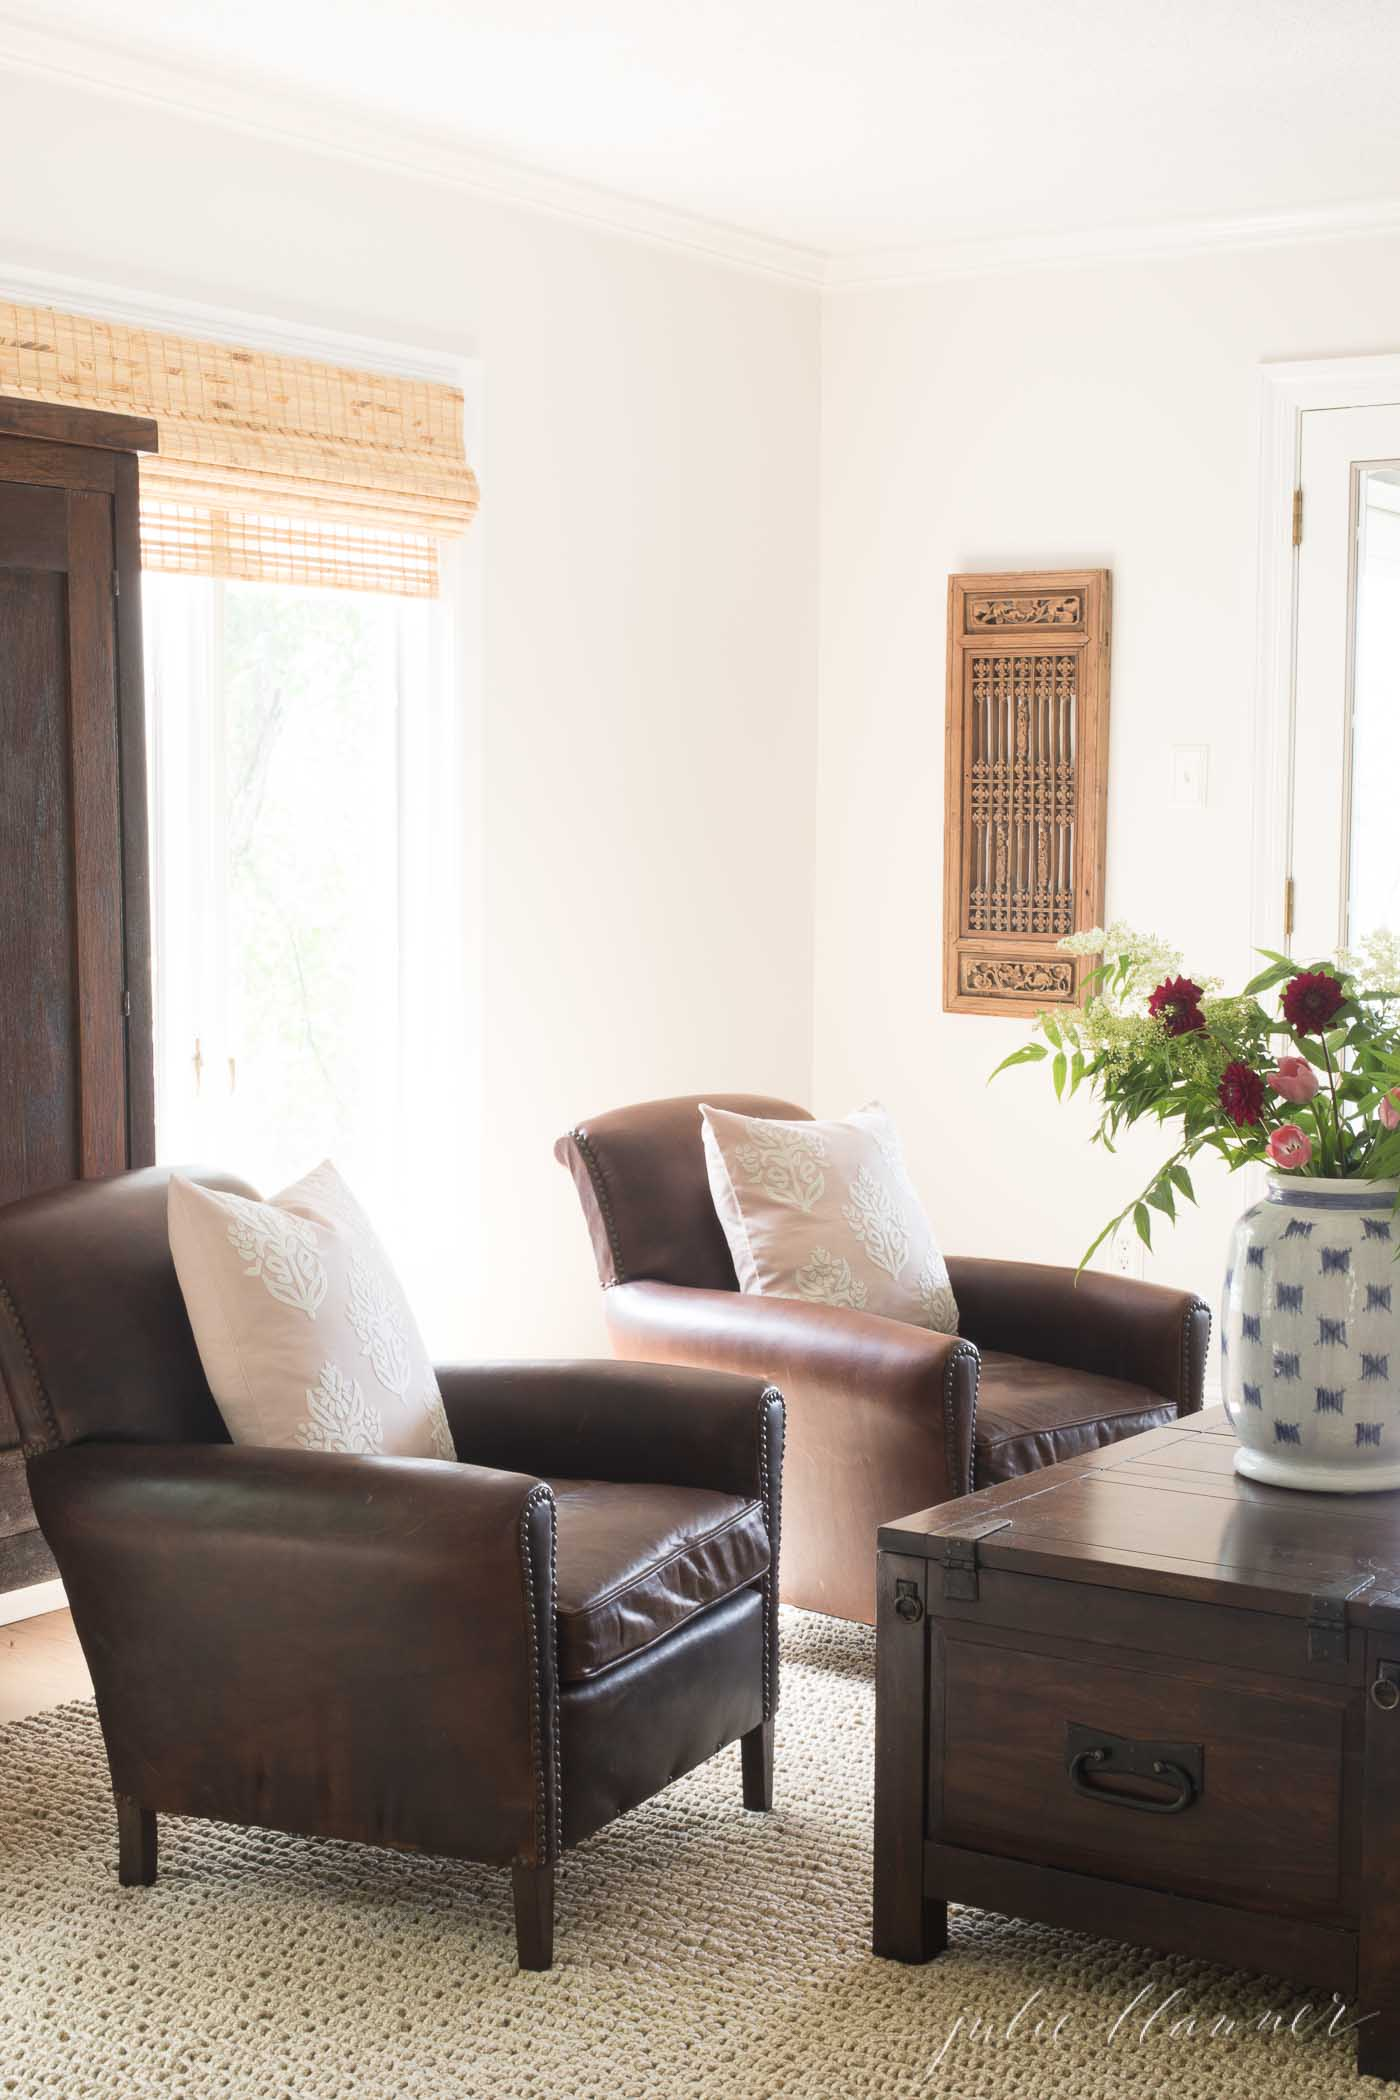 A natural looking kid friendly rug in a living room, with leather chairs and a dark coffee table.